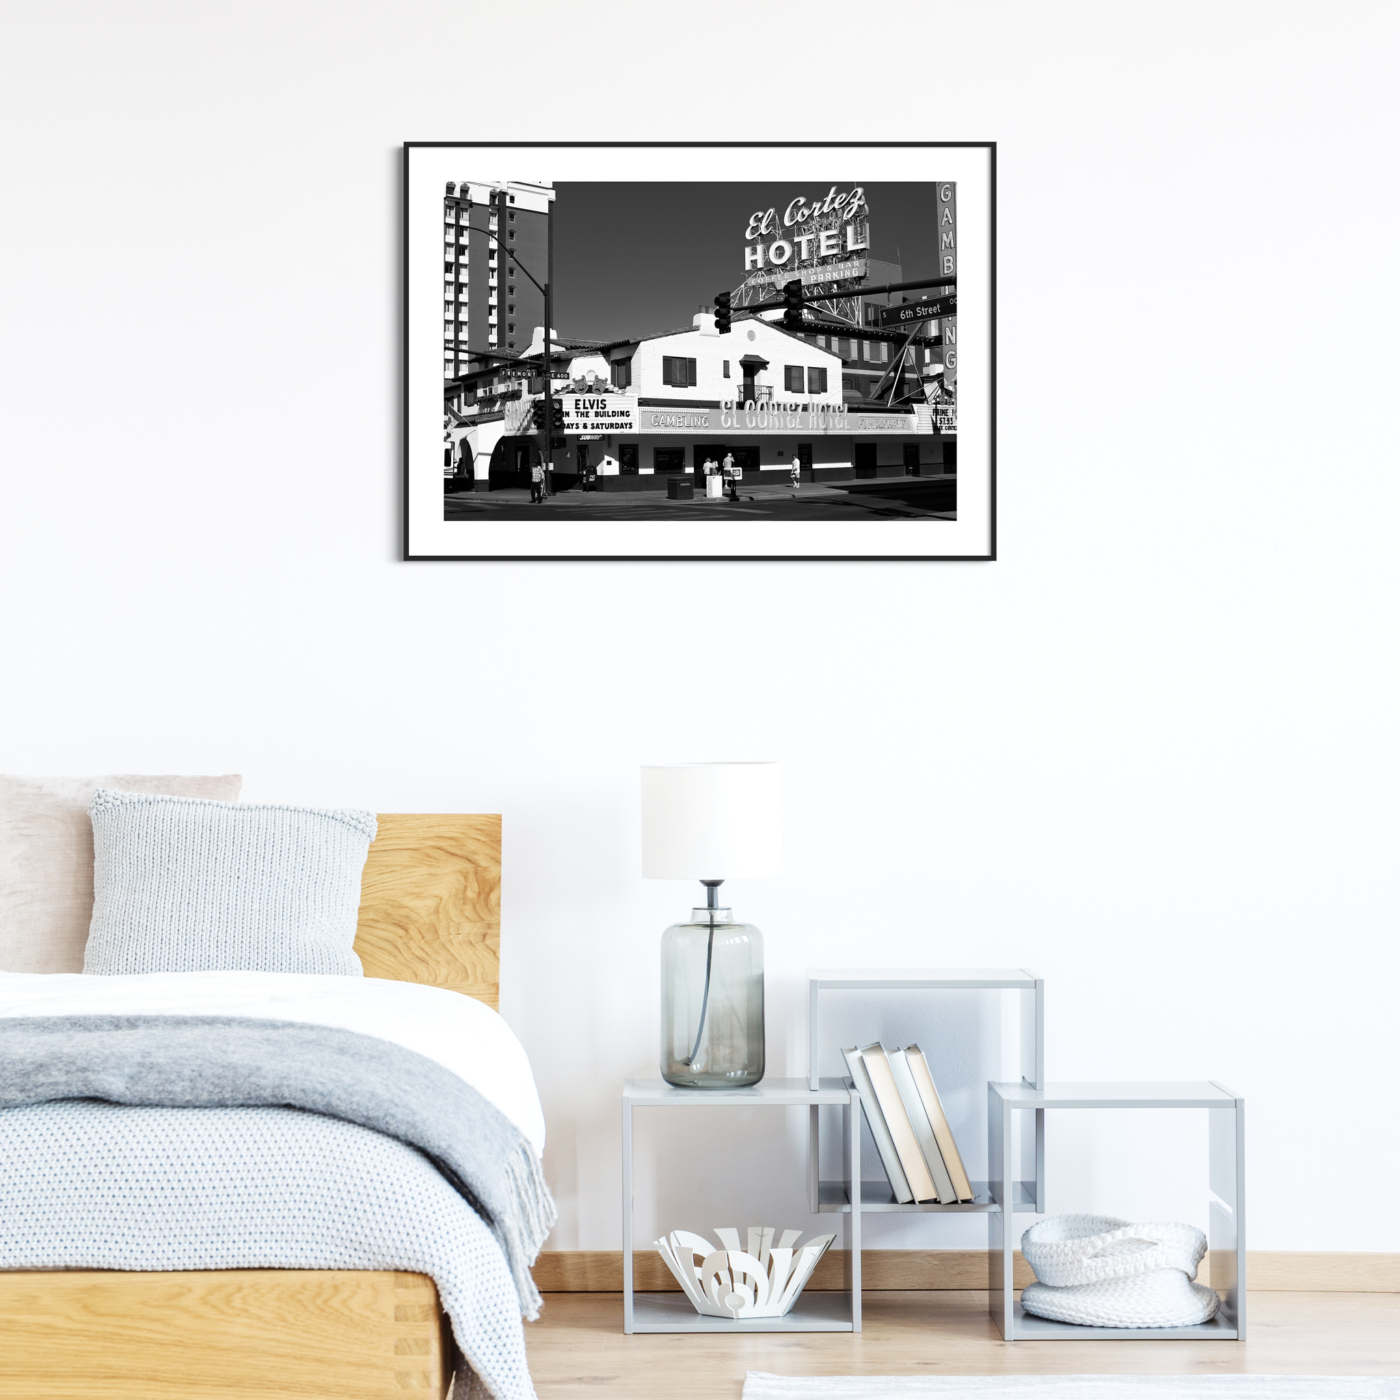 El Cortez Hotel, Las Vegas - black and white photography, print with border in black frame on the wall